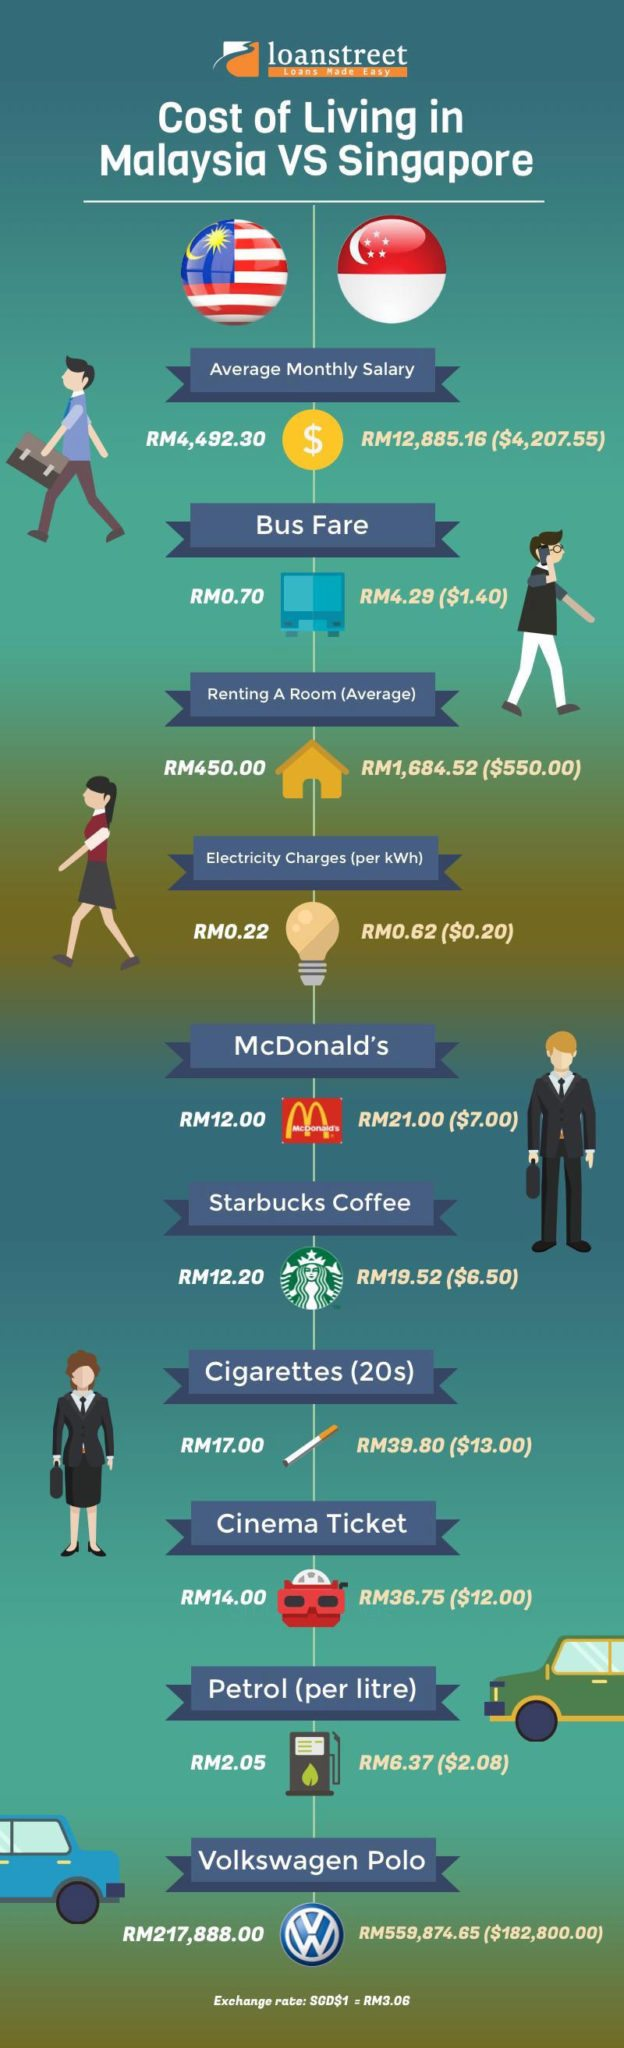 cost-of-living-in-malaysia-vs-singapore-5